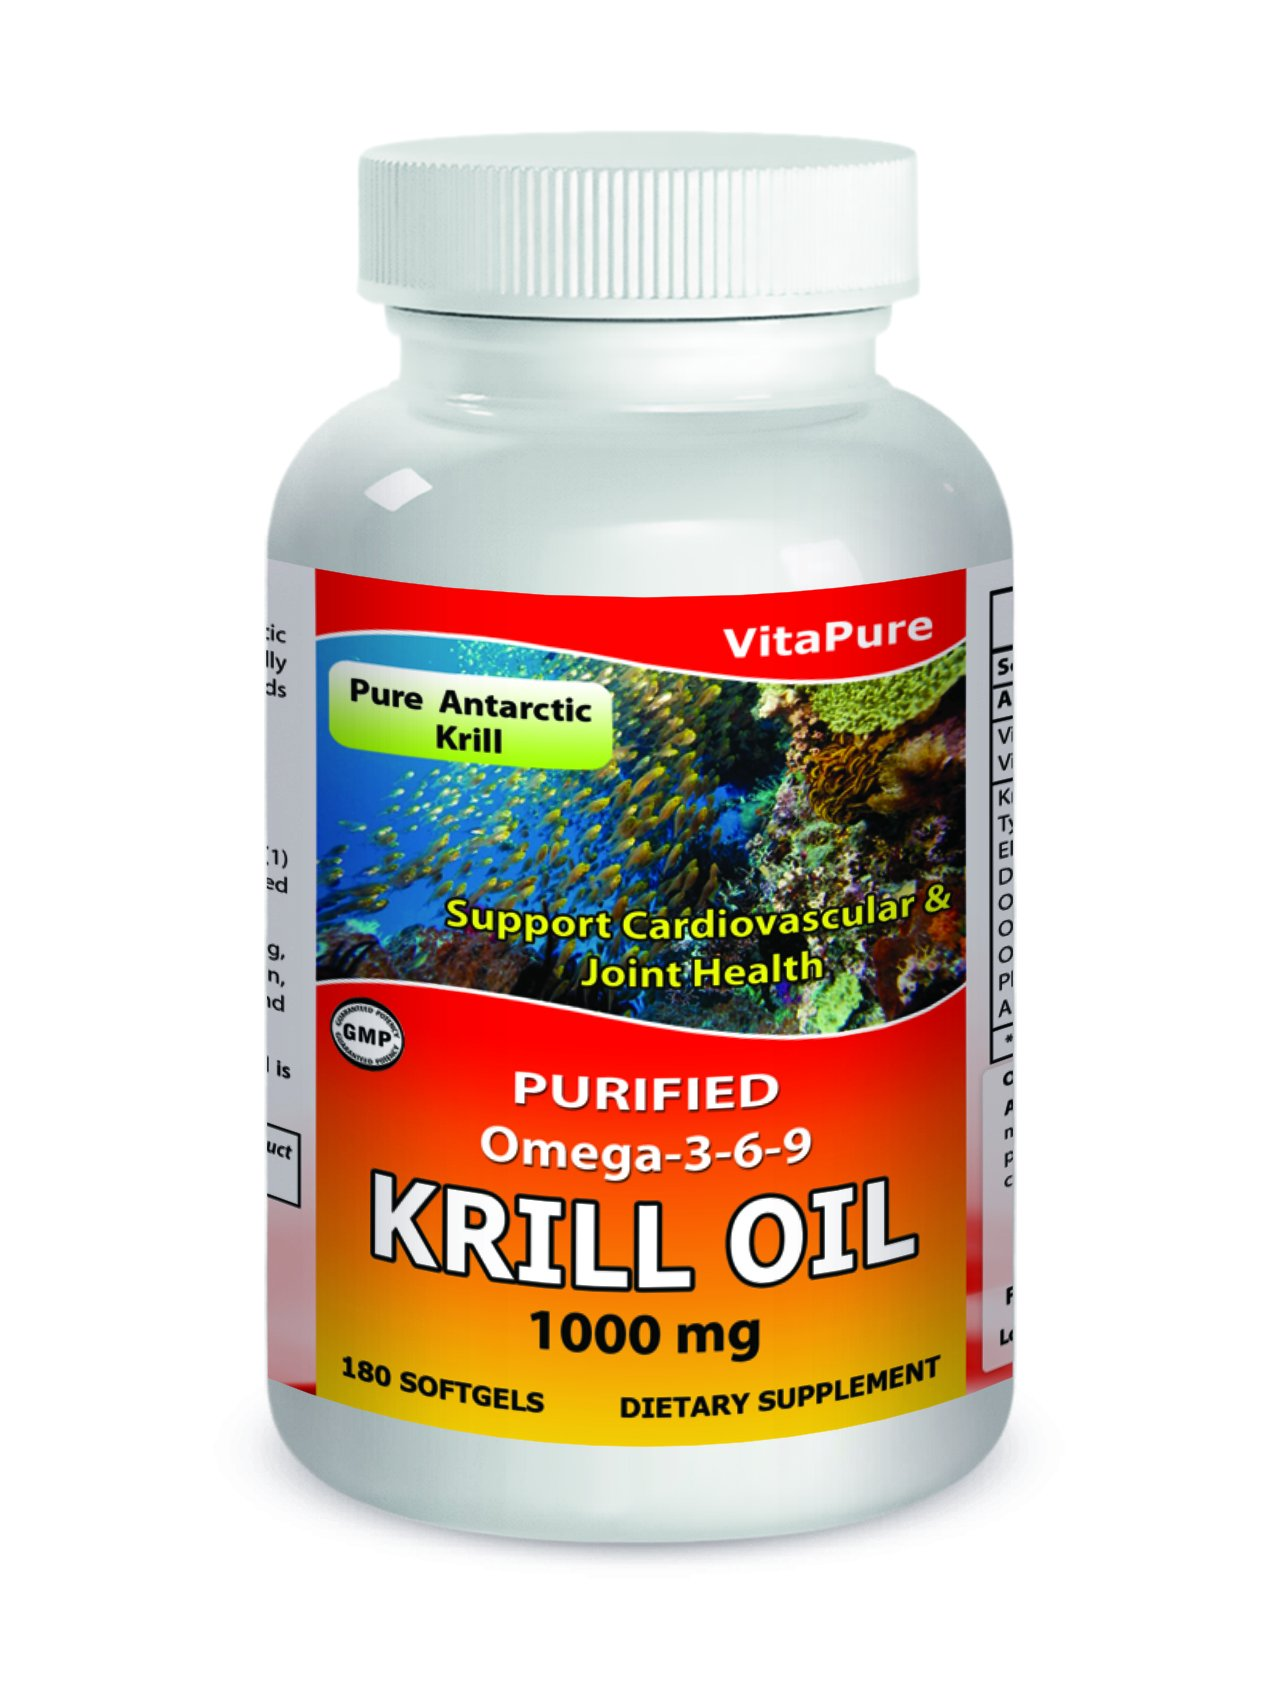 VitaPure Krill Oil 1000 mg 180 Softgels - Pure Antarctic Krill - Purified Omega 3-6-9 -Supports Cardiovascular and Joint health by Pure Vita